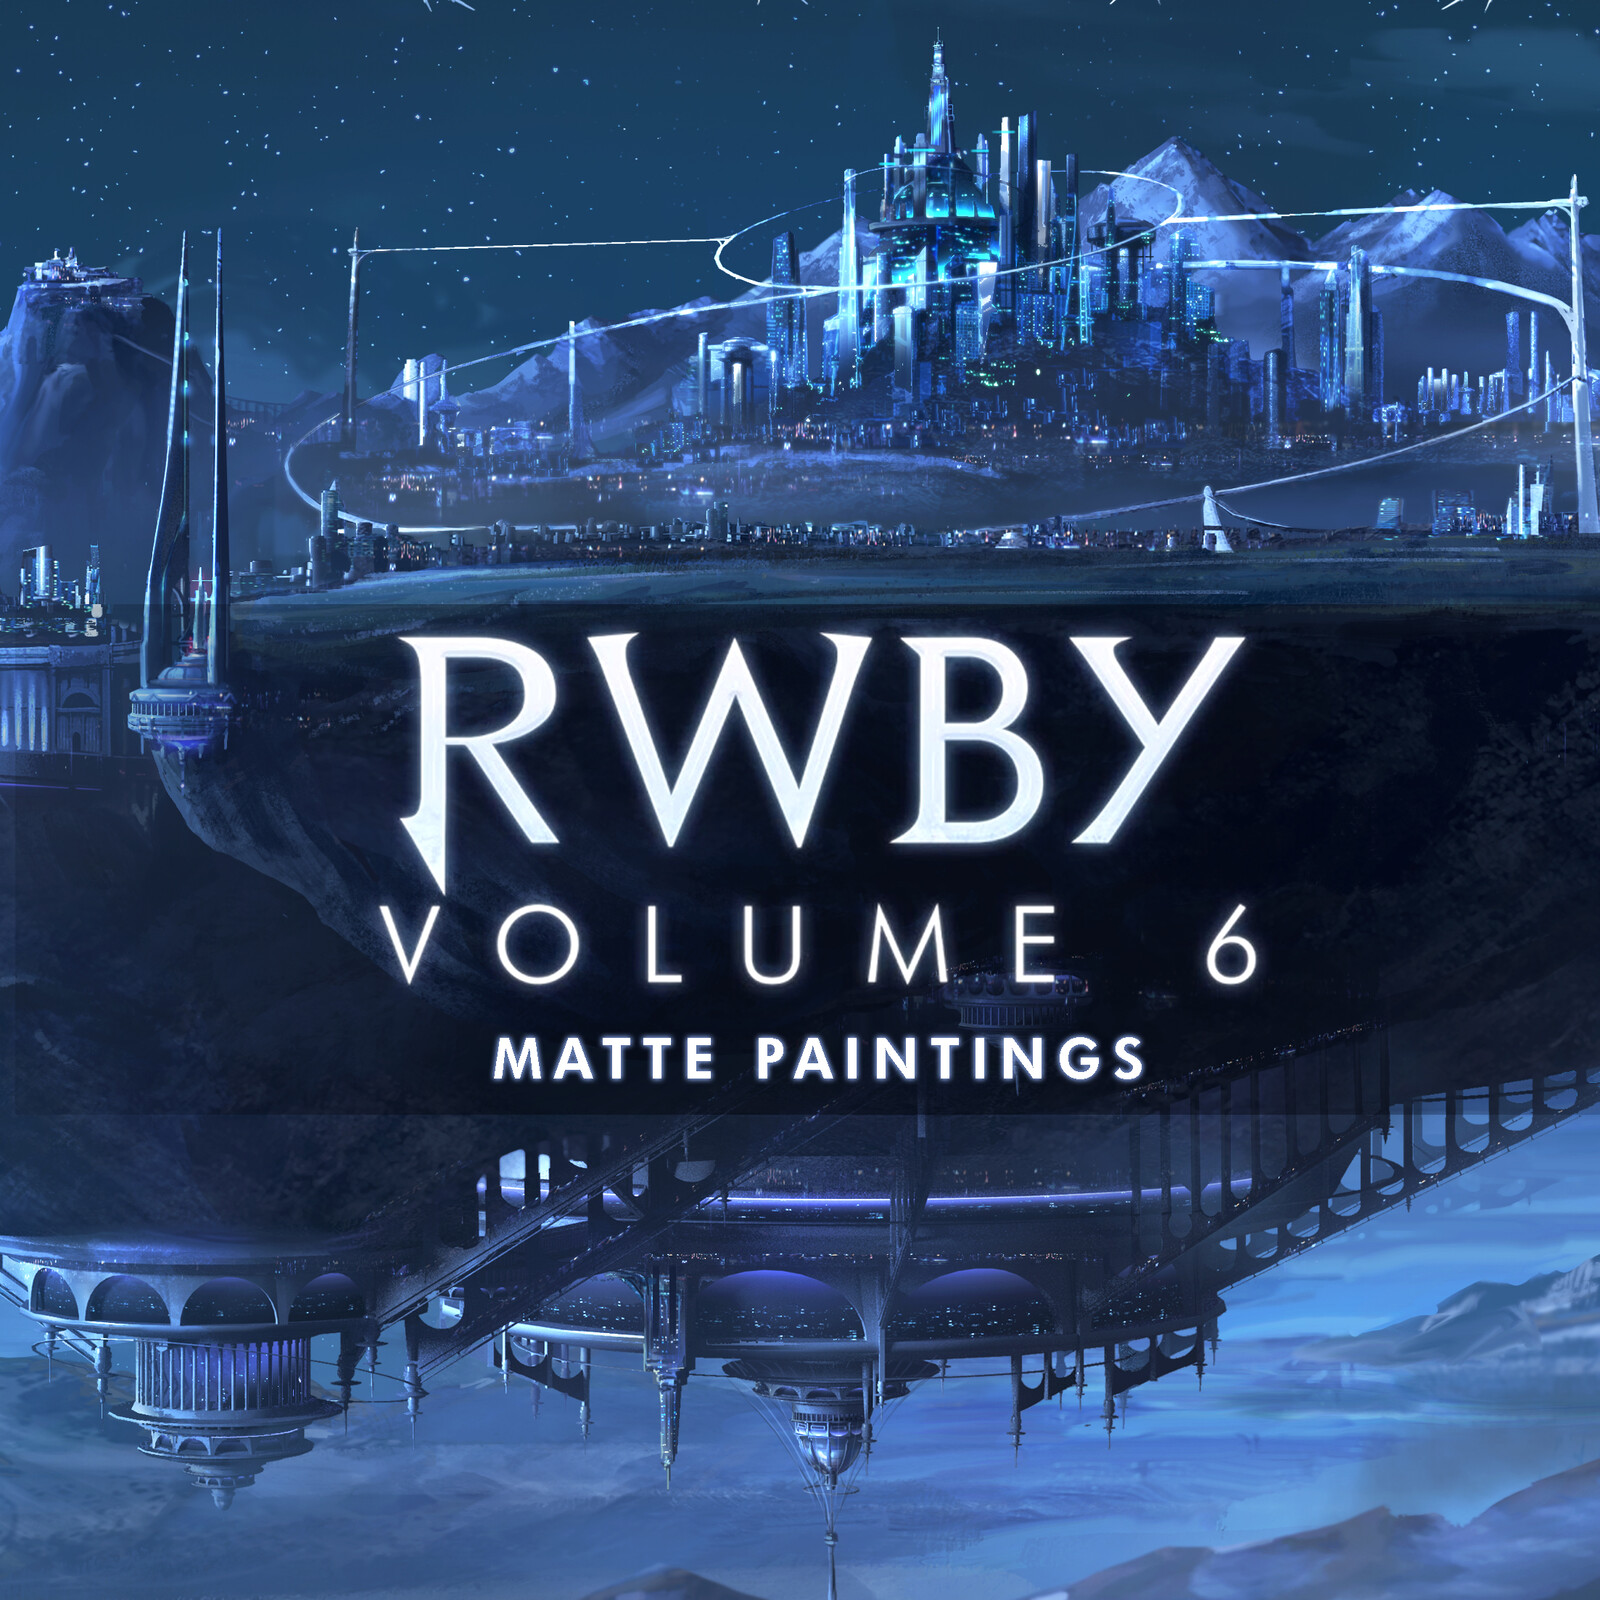 RWBY Volume 6 - Matte Paintings